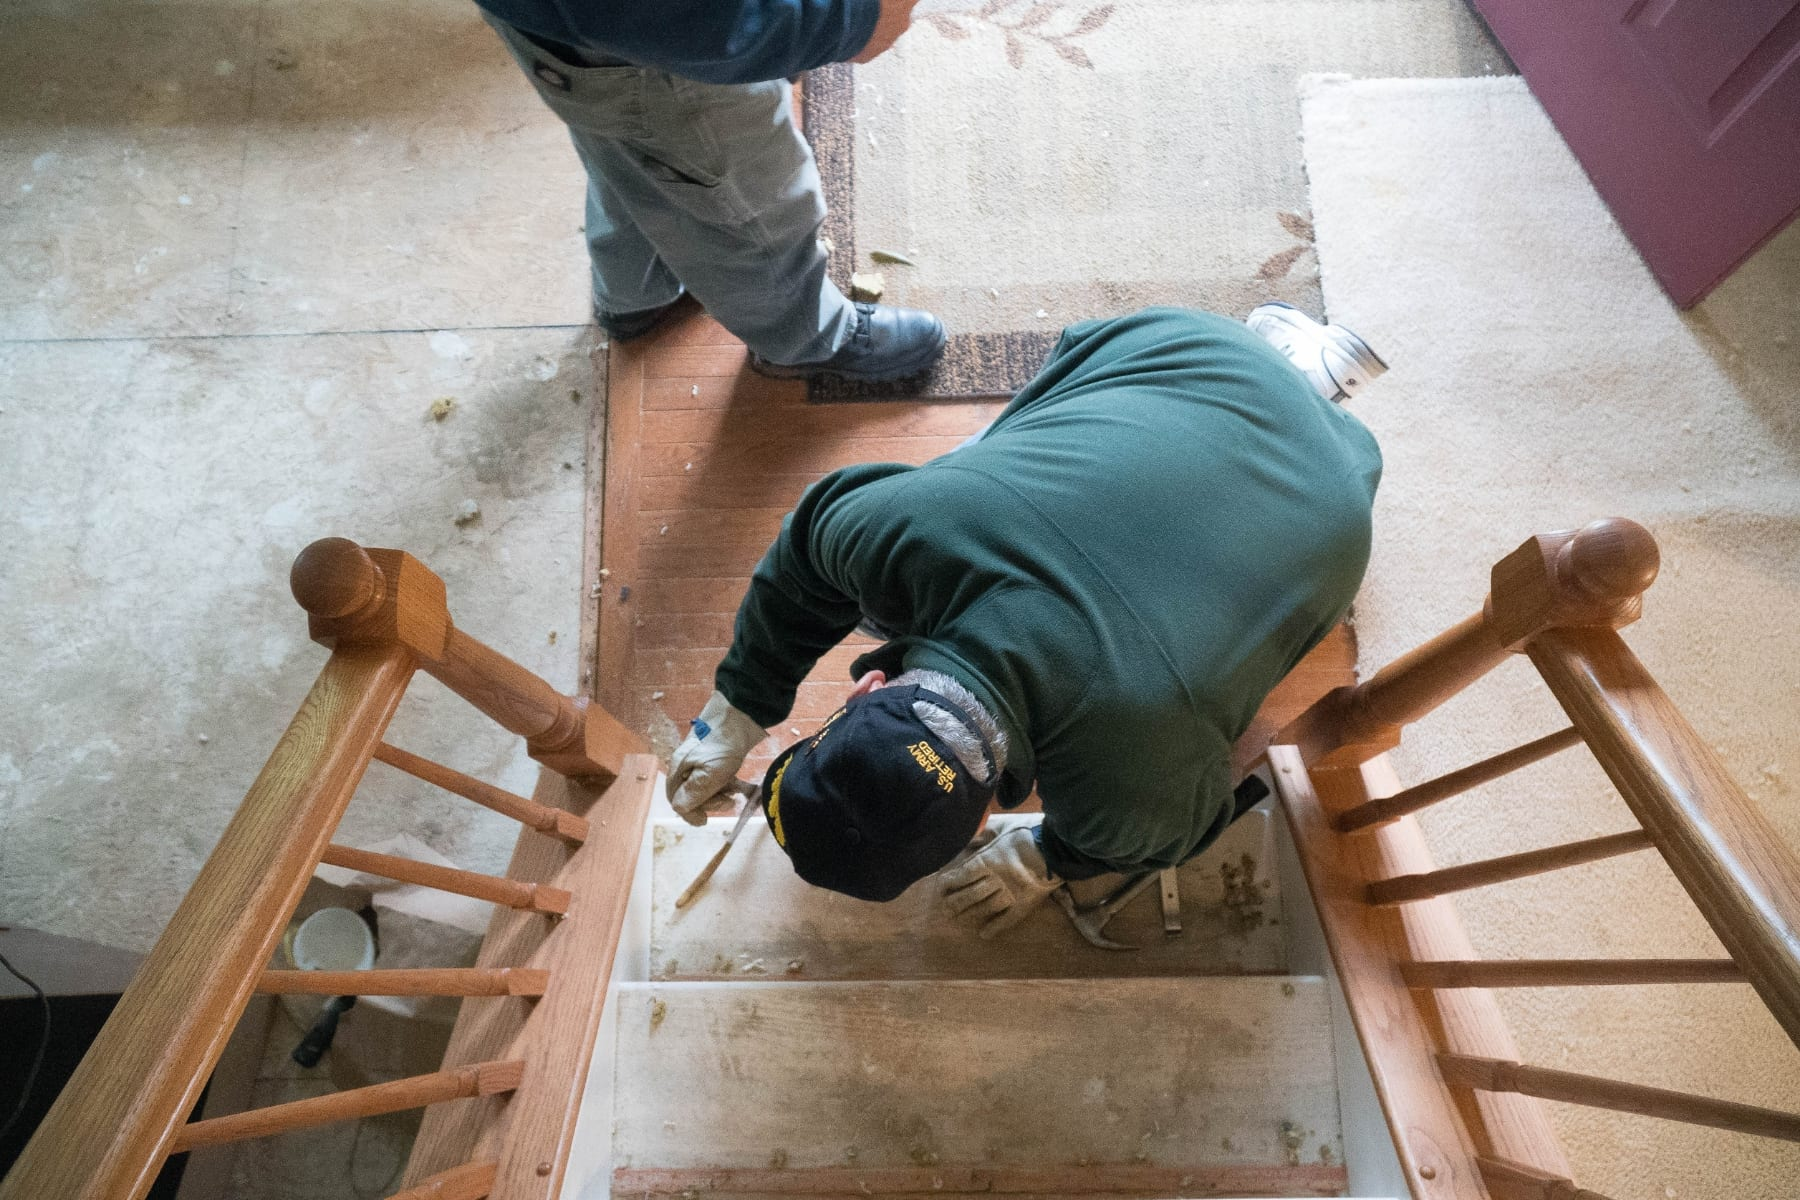 Much of the work on The Higher Standard Project has been done by veterans like Second Class Petty Officer Brian Keys, some of whom use the hours working on the home to add to their own hours of community service.(Photo by Caleb Robertson for Our York Media)